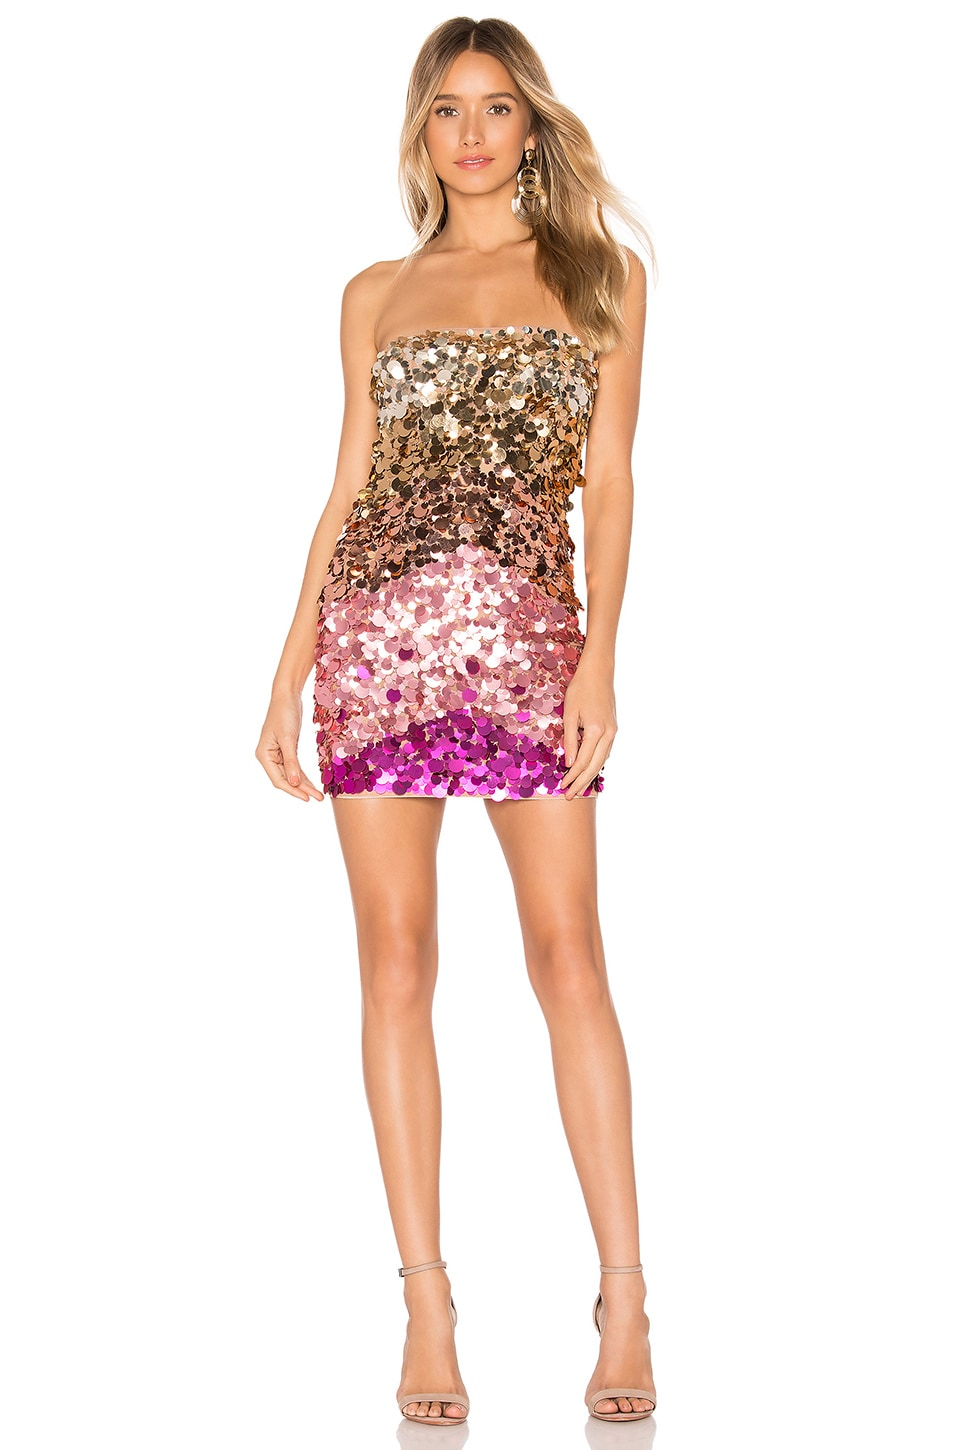 X by NBD Taleah Embellished Mini Dress in Pink